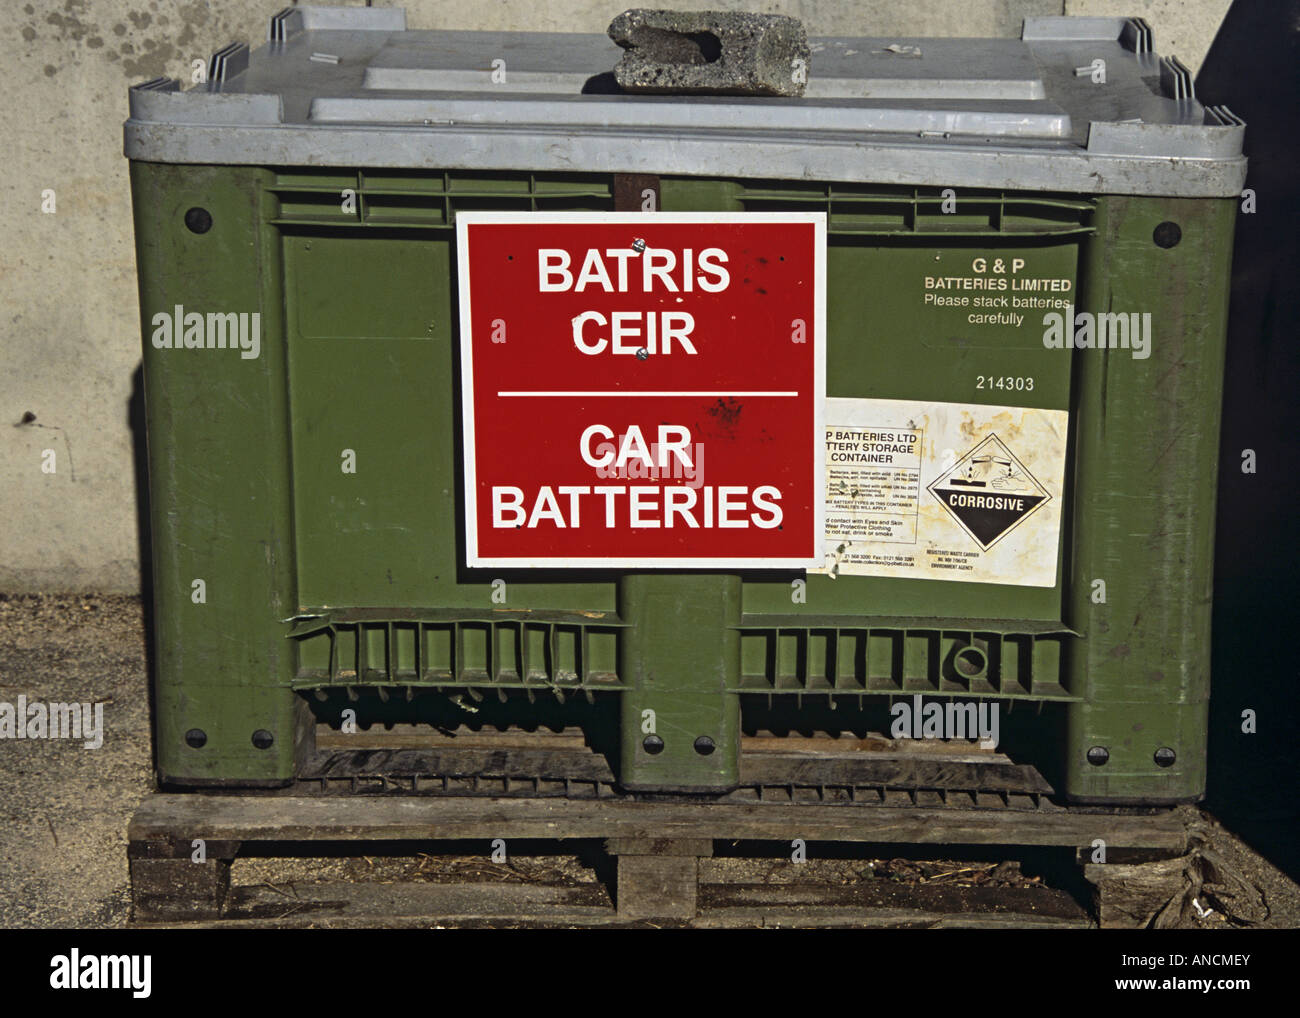 North Wales UK A green plastic skip for safe disposal of unwanted or dead car batteries at the local council tip Stock Photo